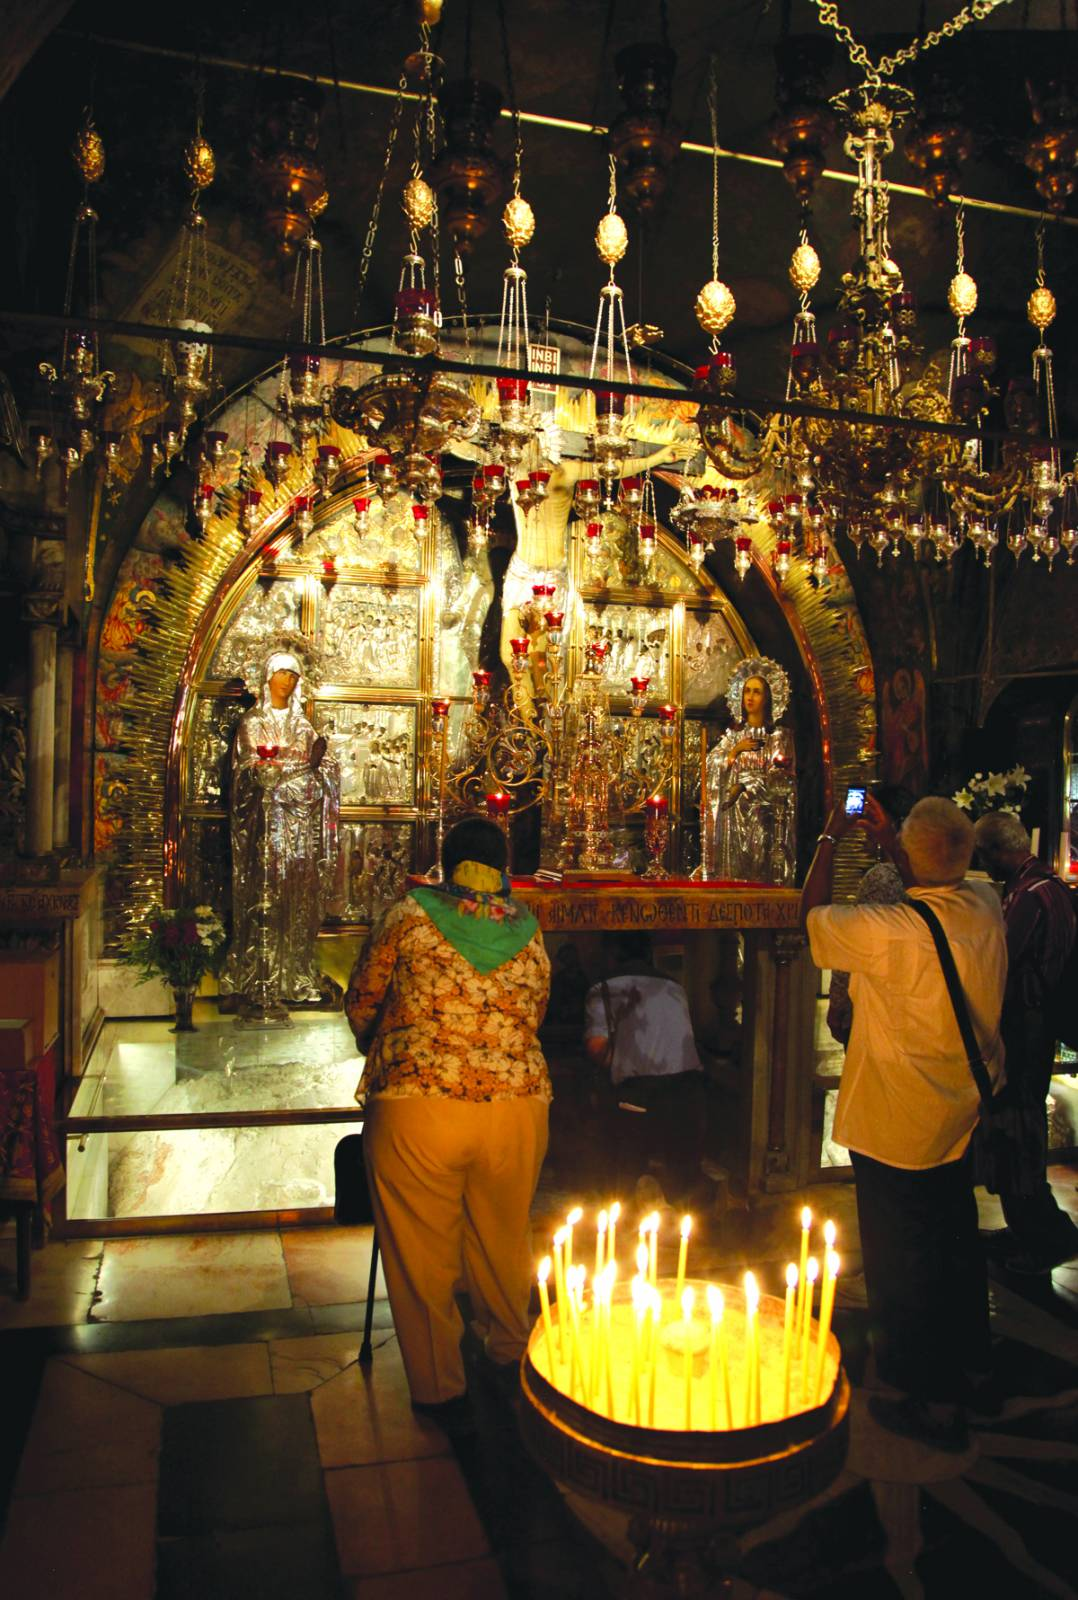 """Visitors to the Church of the Holy Sepulchre look on as one pilgrim stoops down to touch the stone indention the church tradition identifies as the socket where Jesus' cross was placed. Just left of the altar a portion of the presumed """"Calvary"""" hill is visible. Photo by Gar D. Myers"""